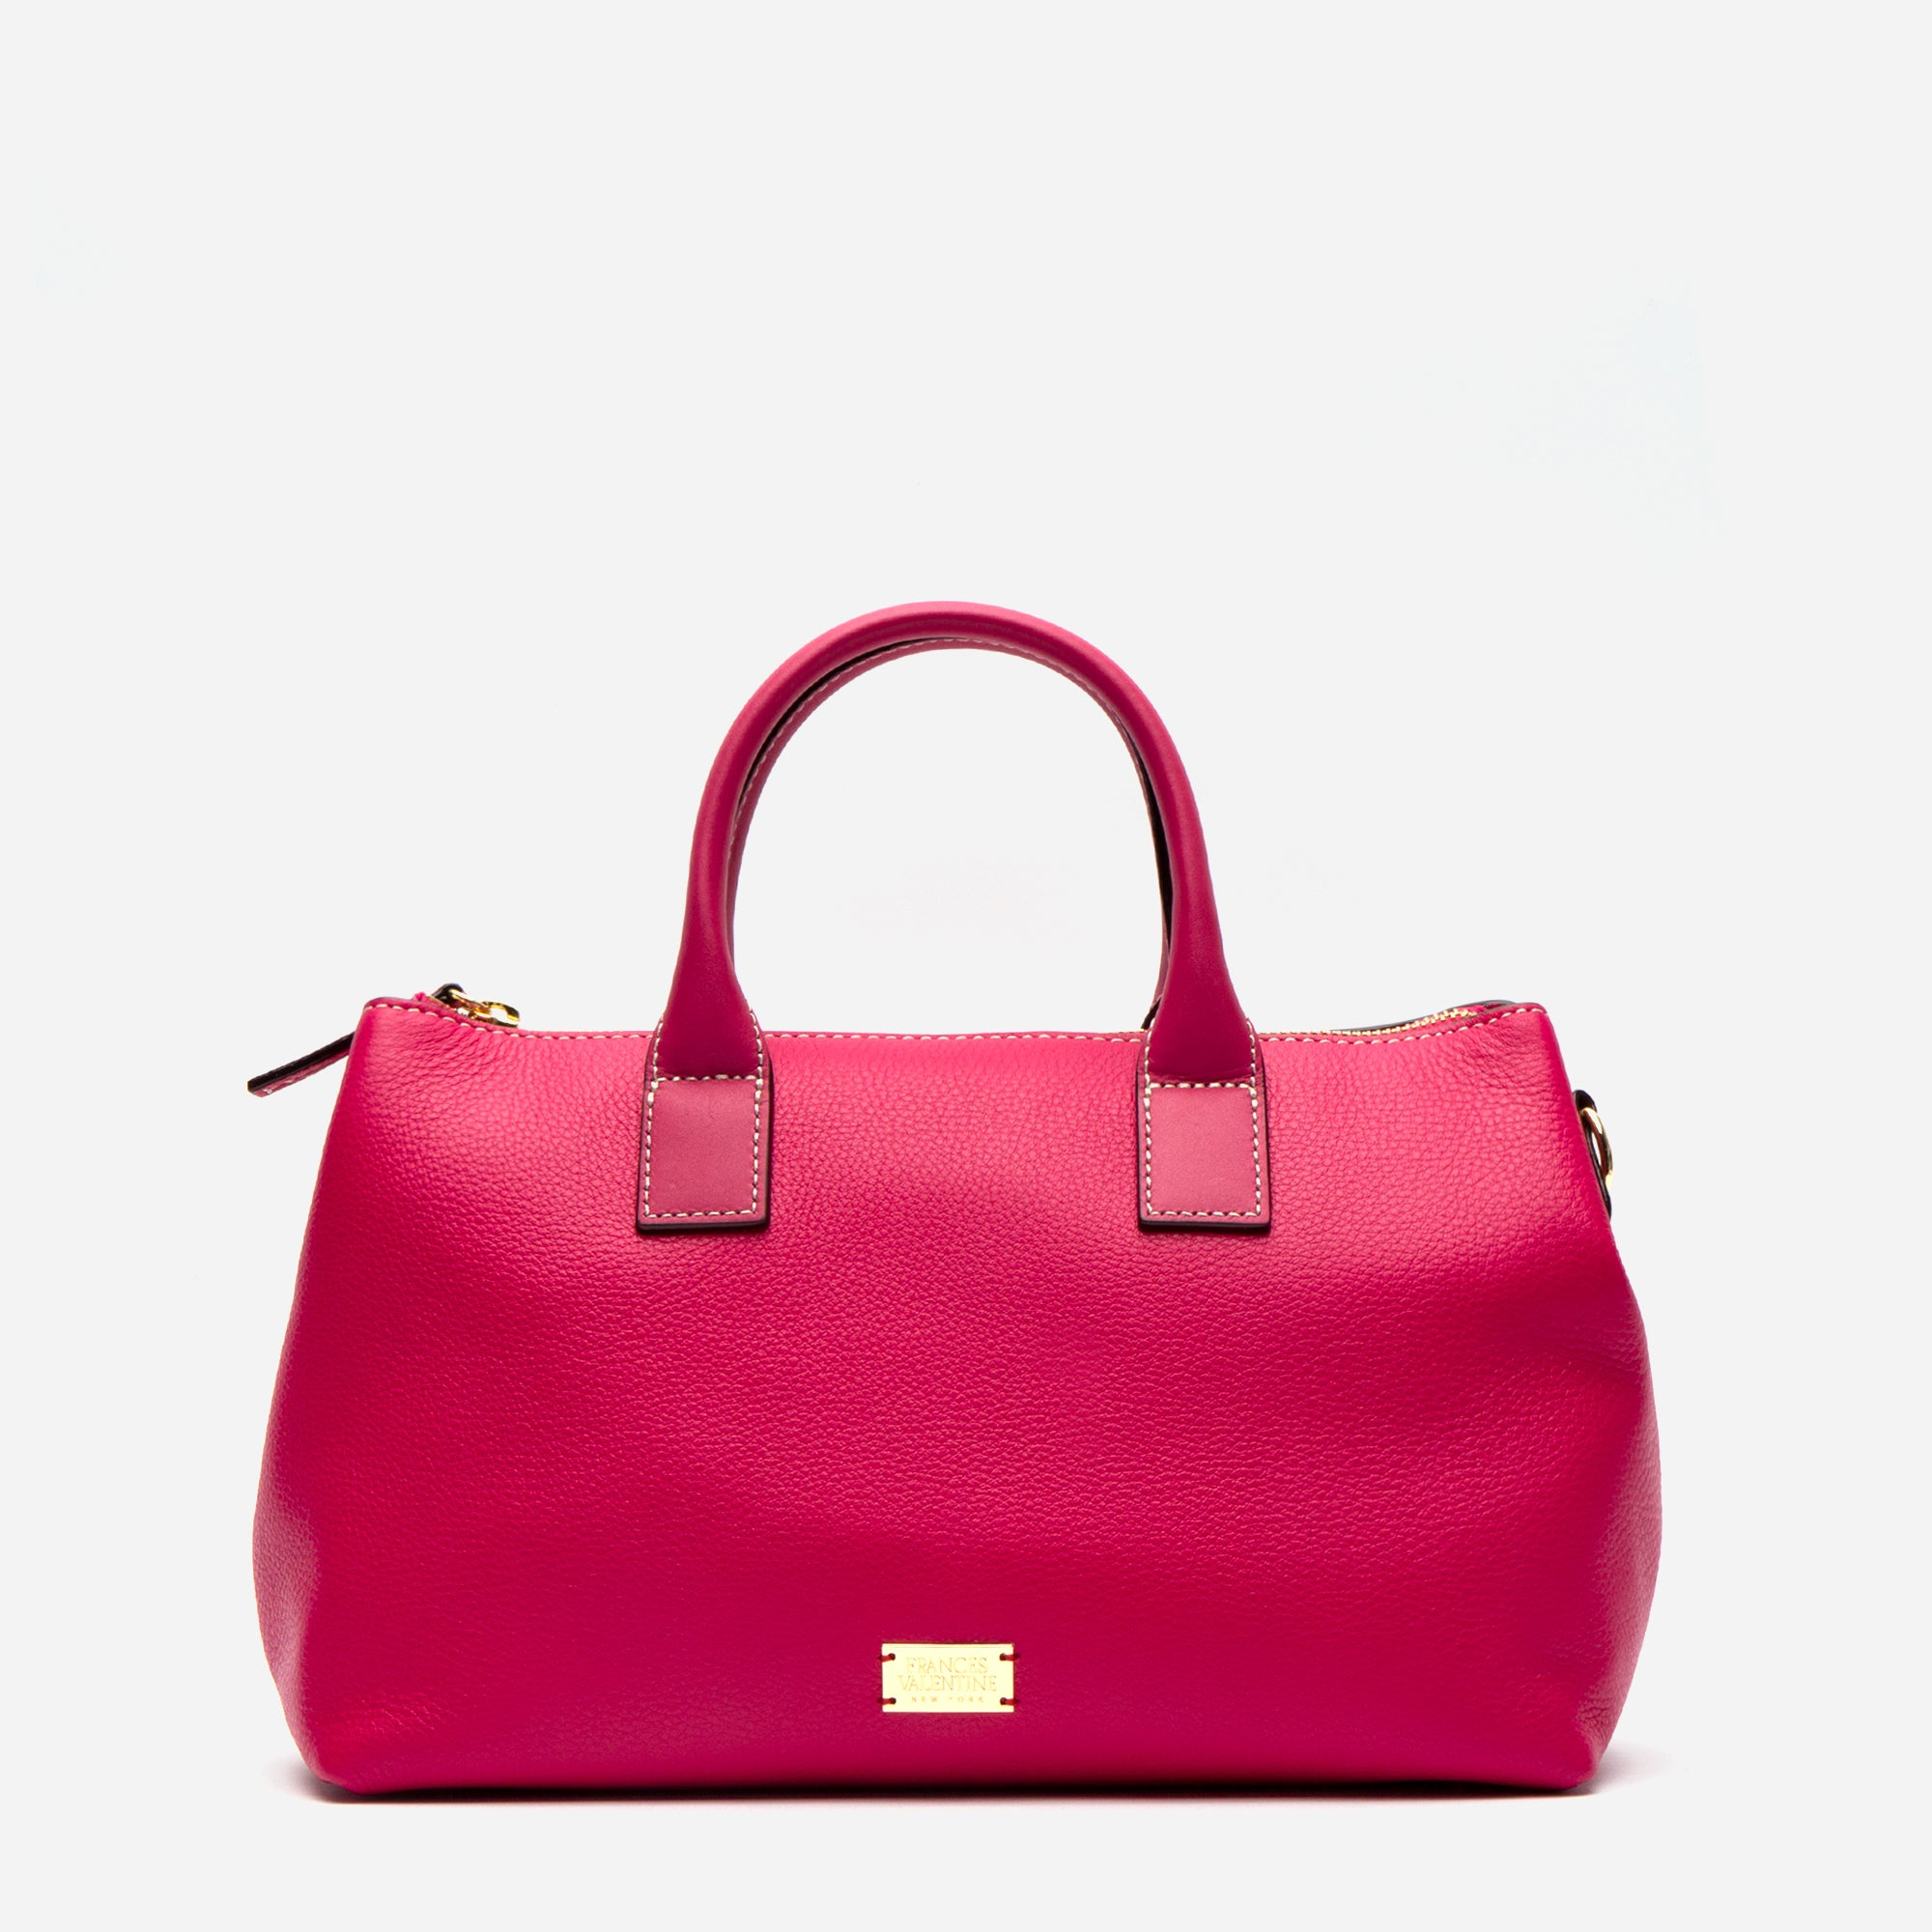 Tilly Tumbled Leather Pink